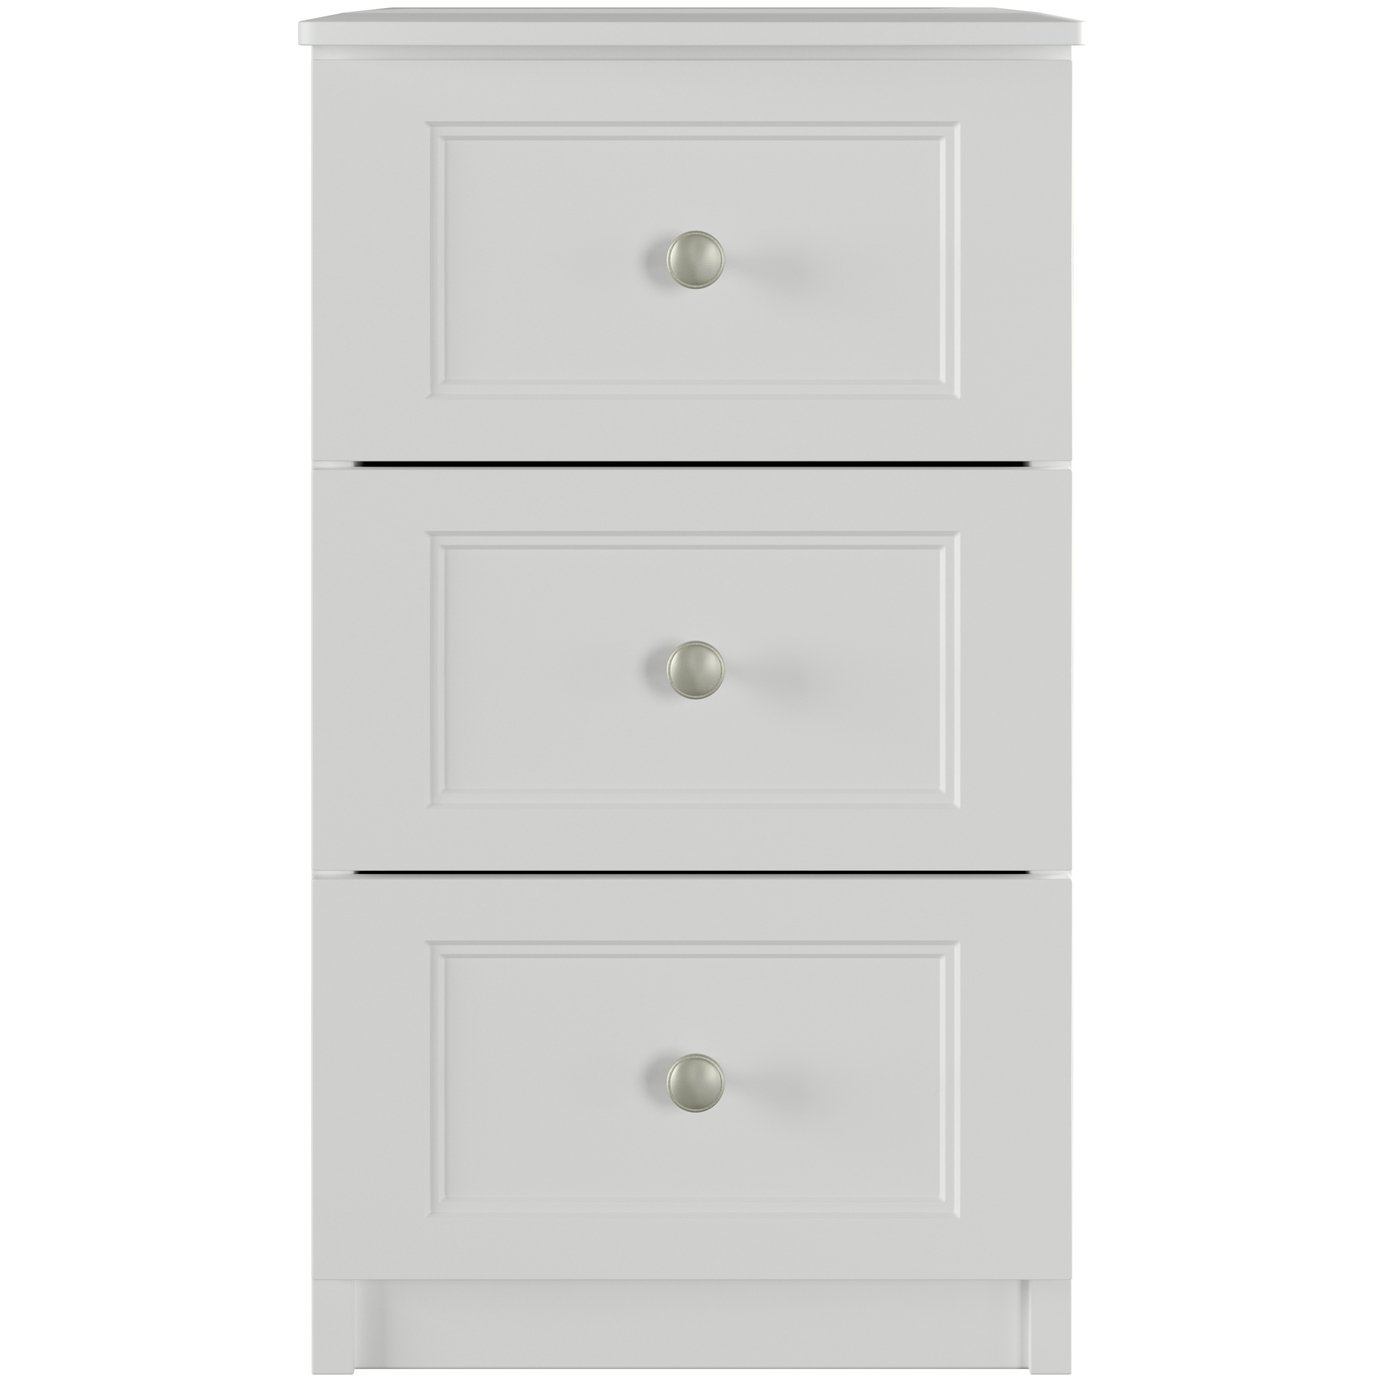 One Call Bexley 3 Drawer Bedside Cabinet - White